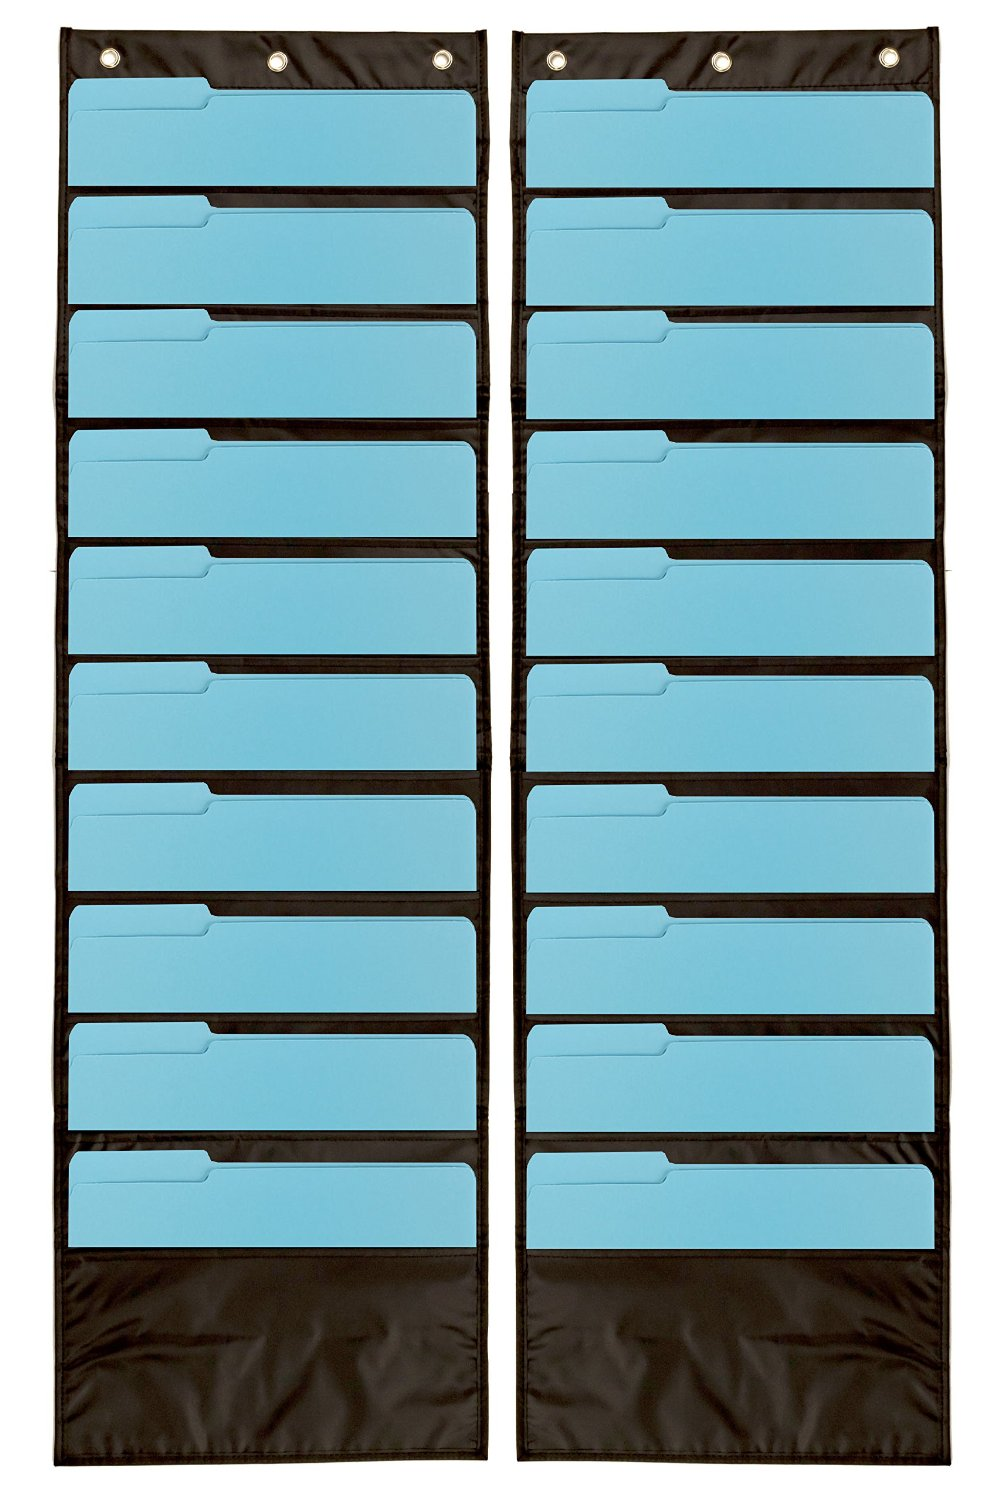 & Black Wall Pocket Storage Charts | Perfect For Classroom Use